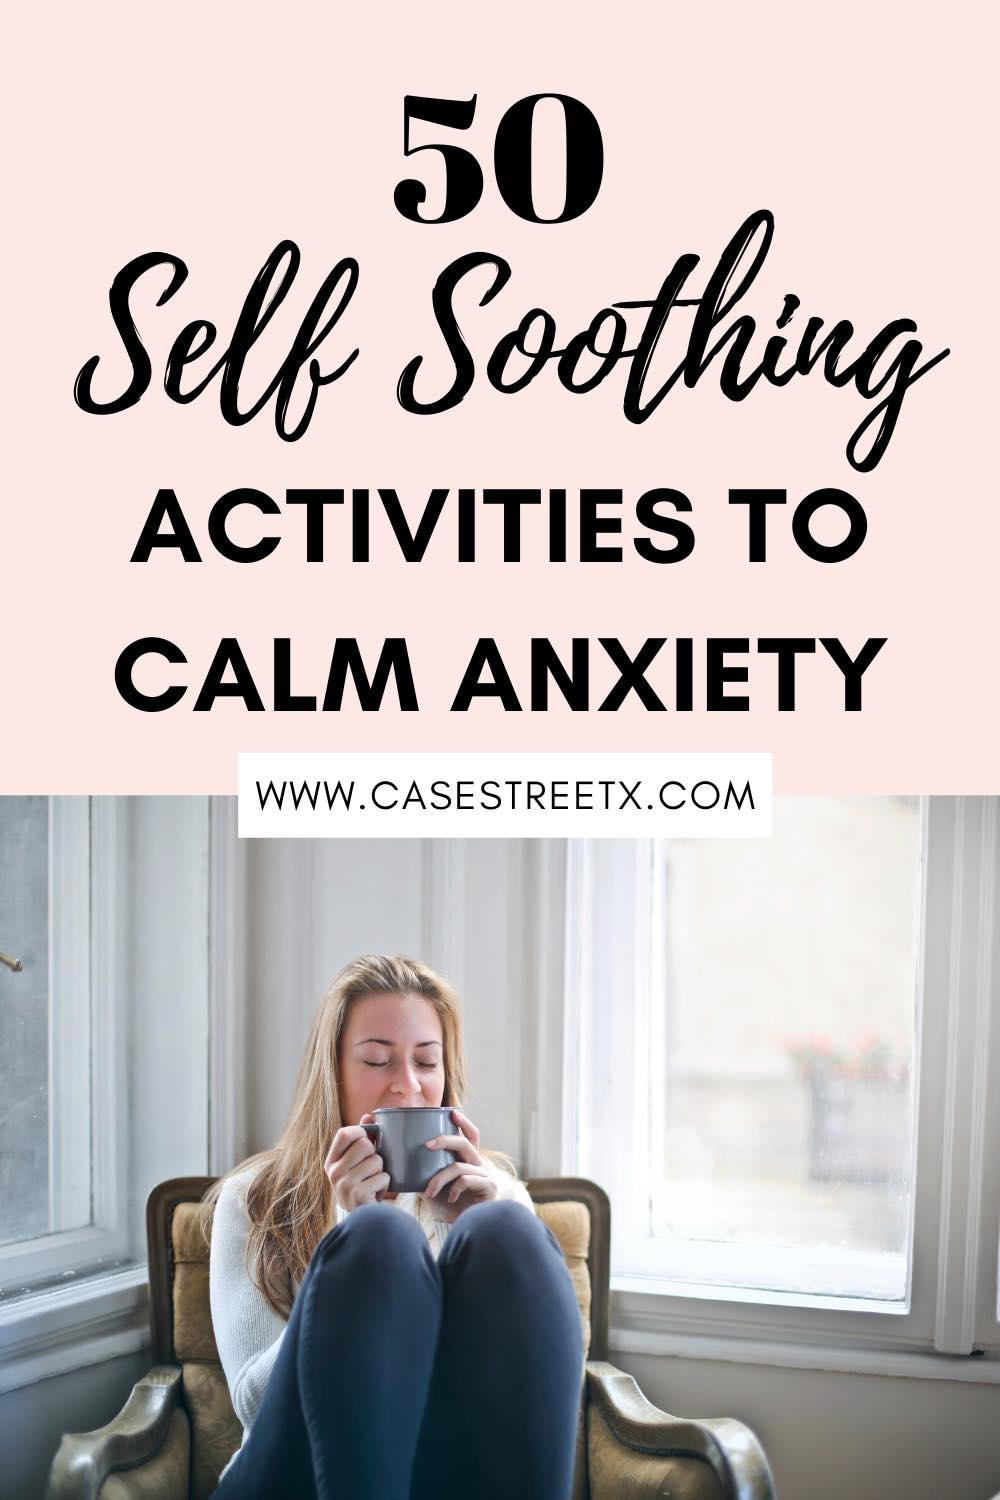 Self Soothing Activities to Calm Anxiety